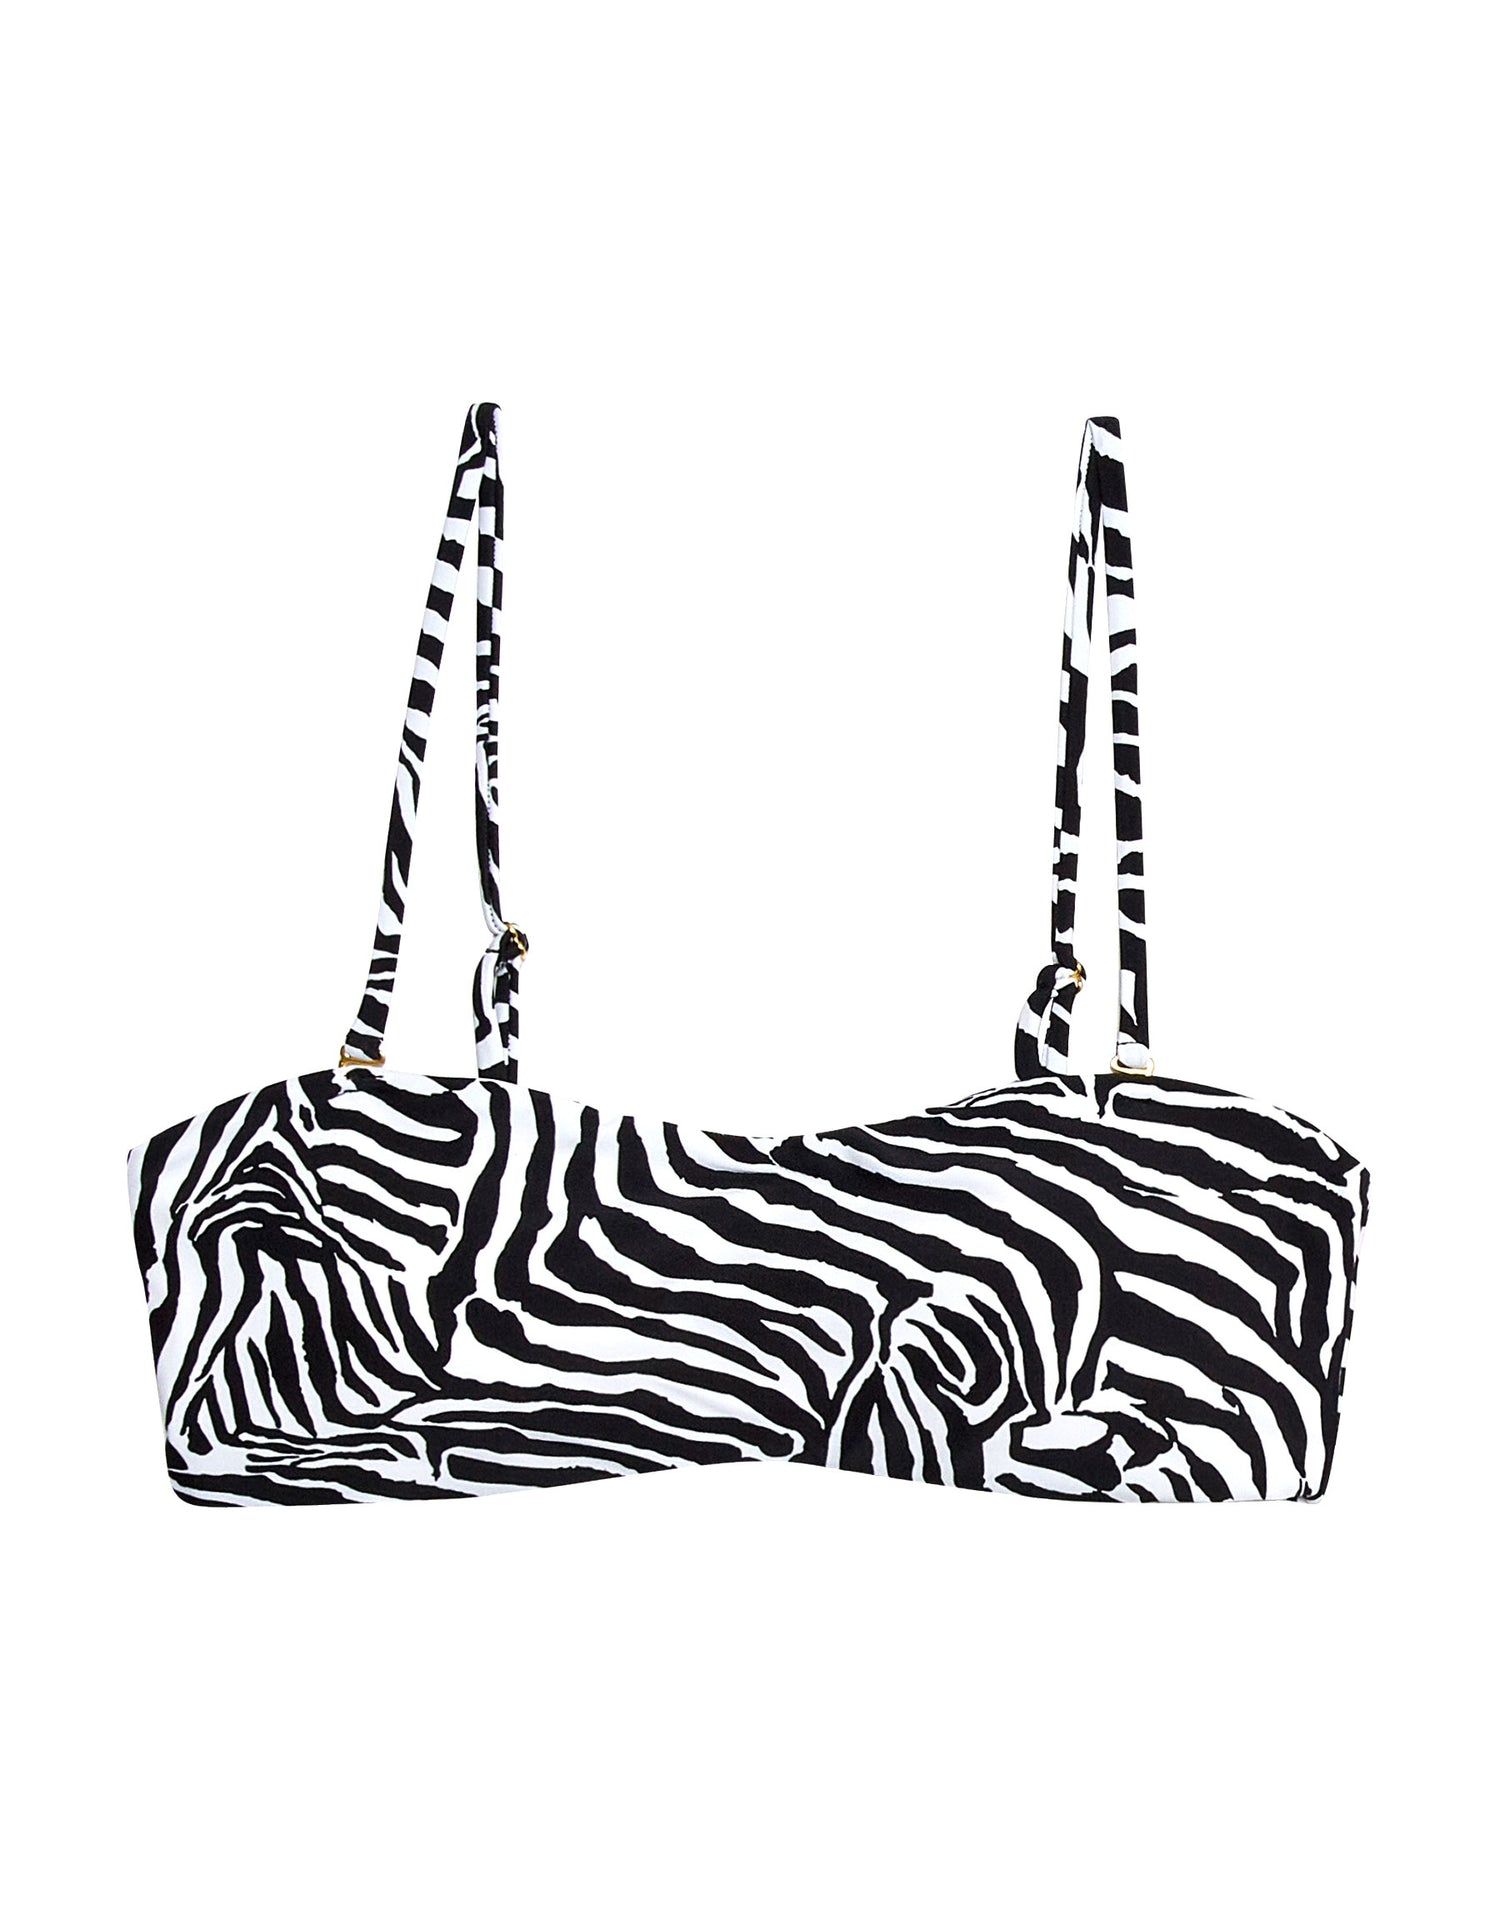 London Bralette Bikini Top in Zebra - product view